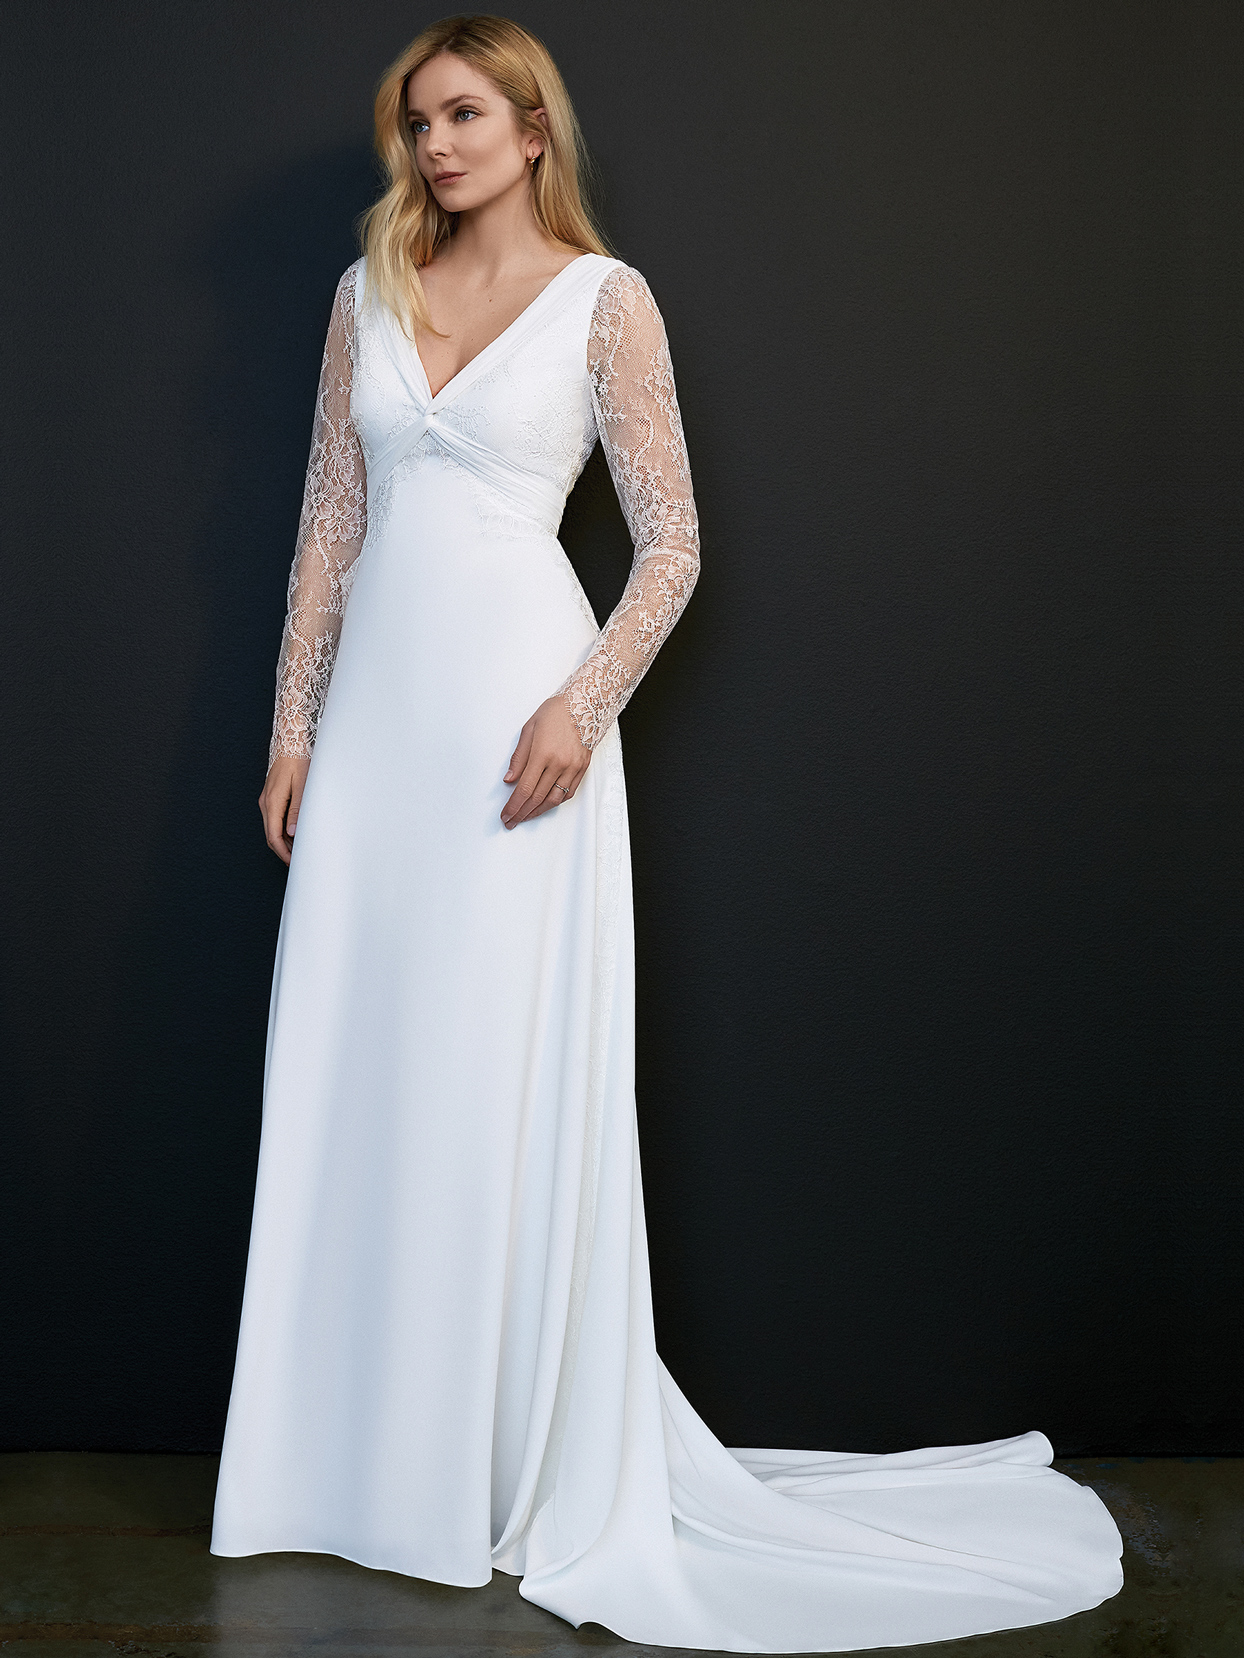 savannah miller v-neck lace long sleeve wedding dress spring 2021